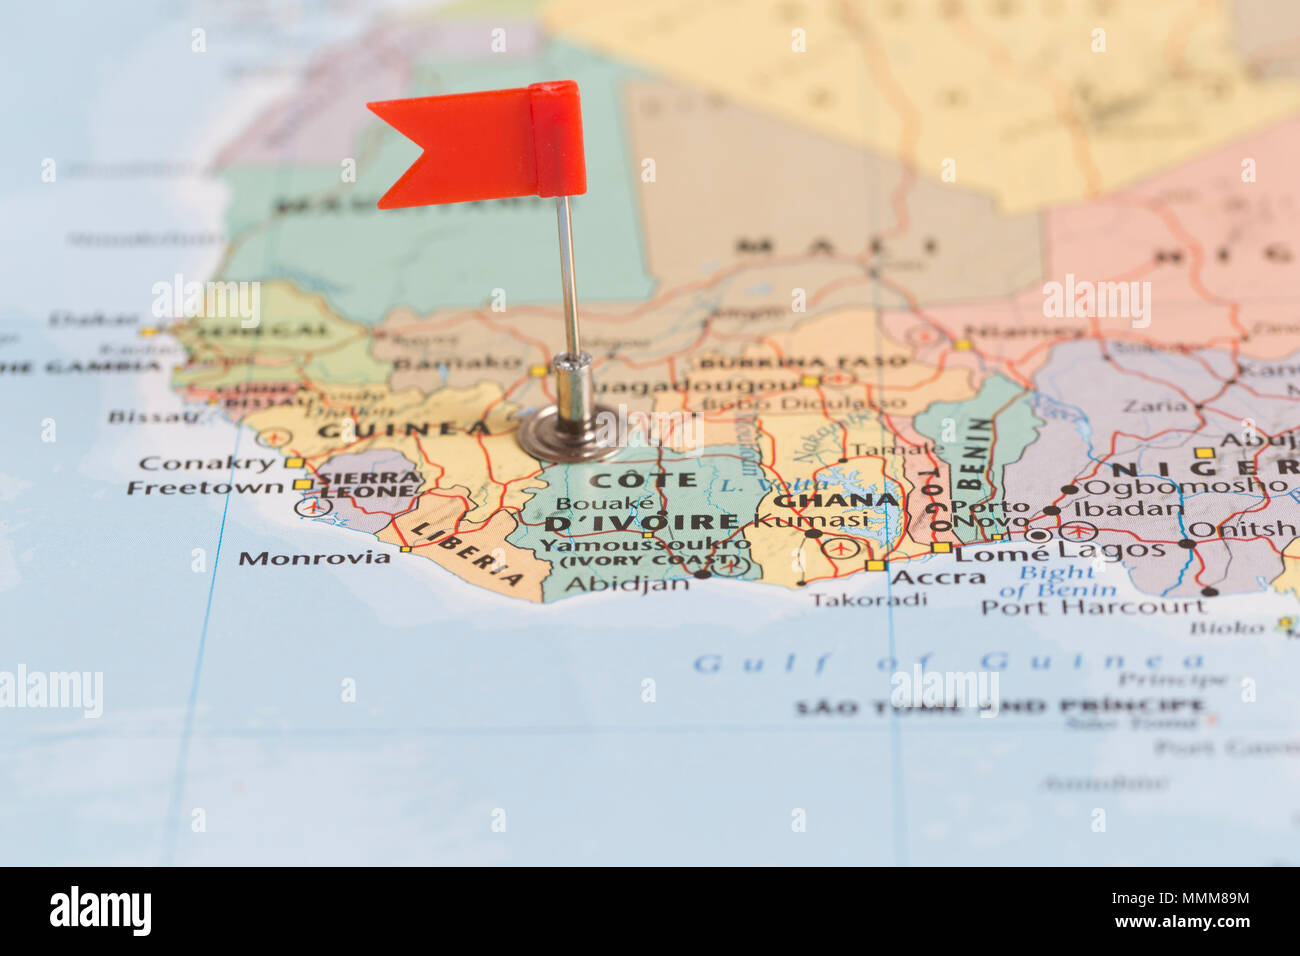 Small red flag marking the African country of  Cote D'Ivoire on a world map. - Stock Image